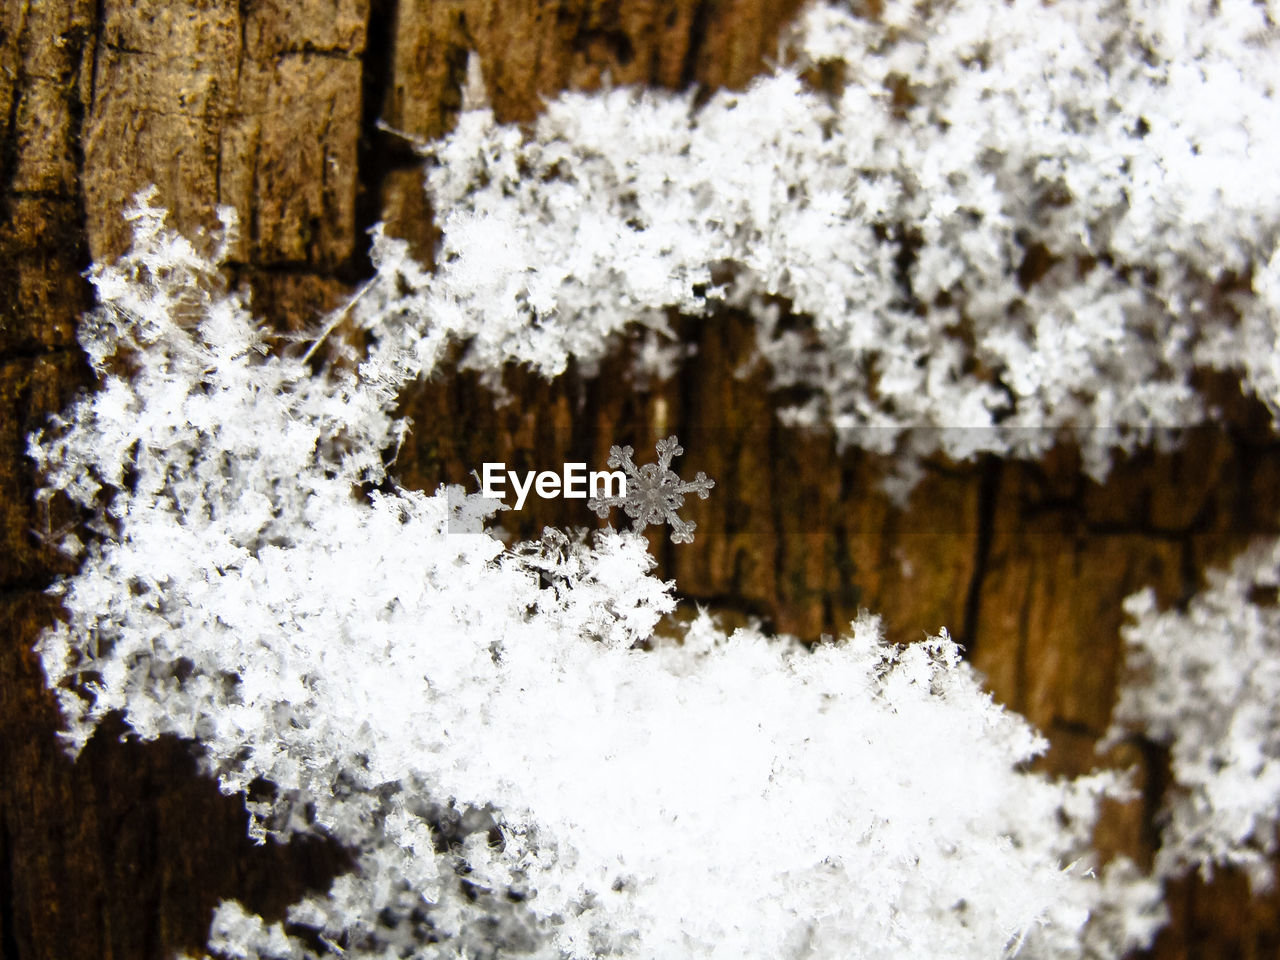 snow, cold temperature, winter, plant, white color, beauty in nature, tree, nature, frozen, day, no people, close-up, covering, tranquility, focus on foreground, ice, outdoors, wood - material, branch, lichen, coniferous tree